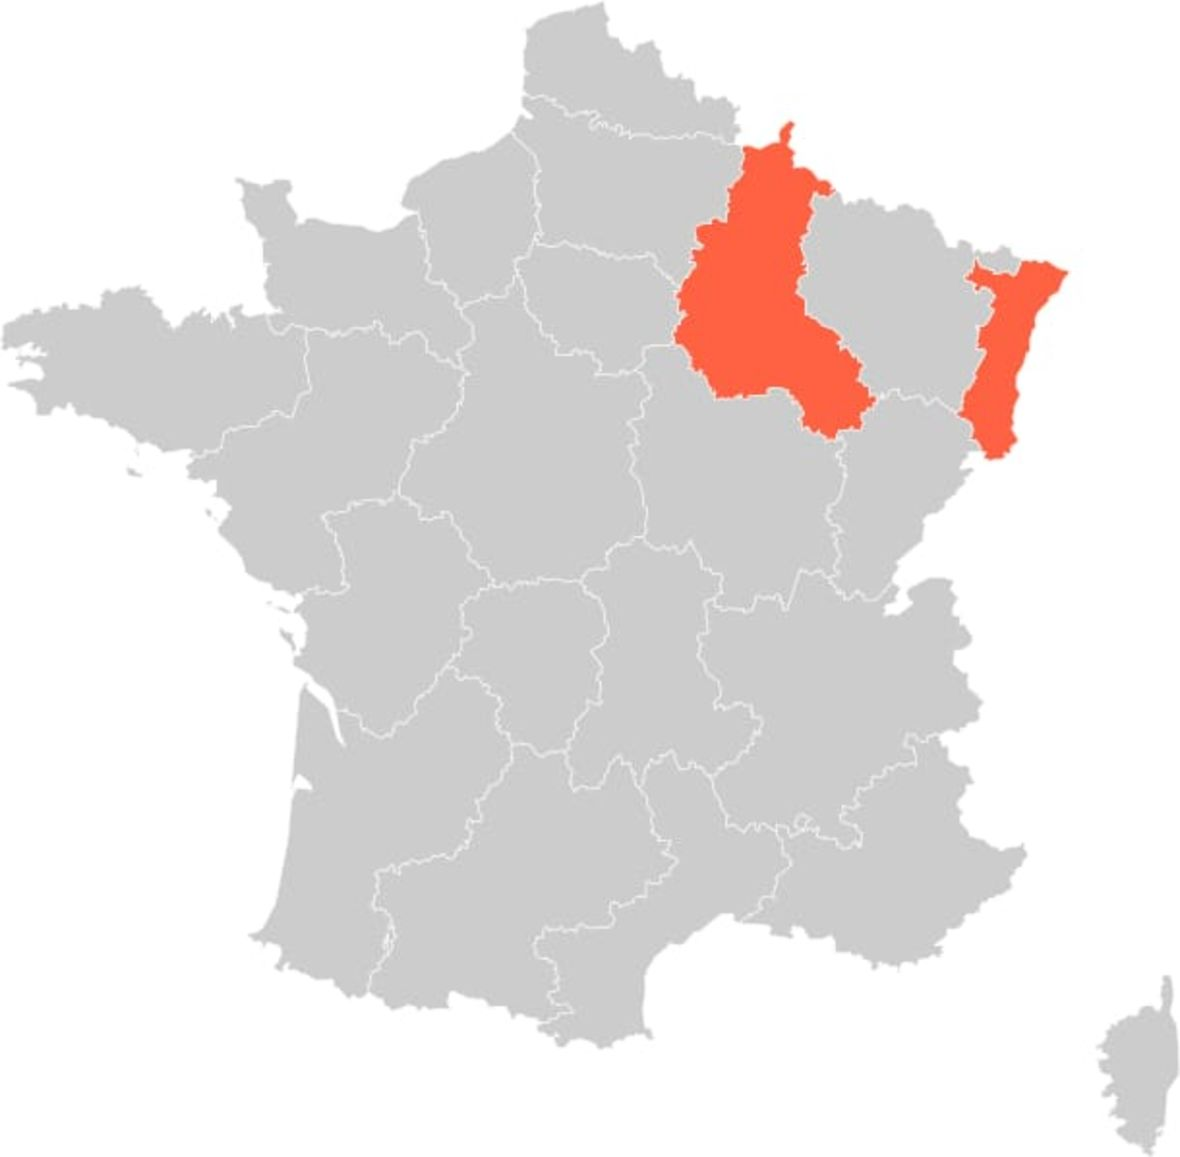 France Alsace and Champagne Region Map